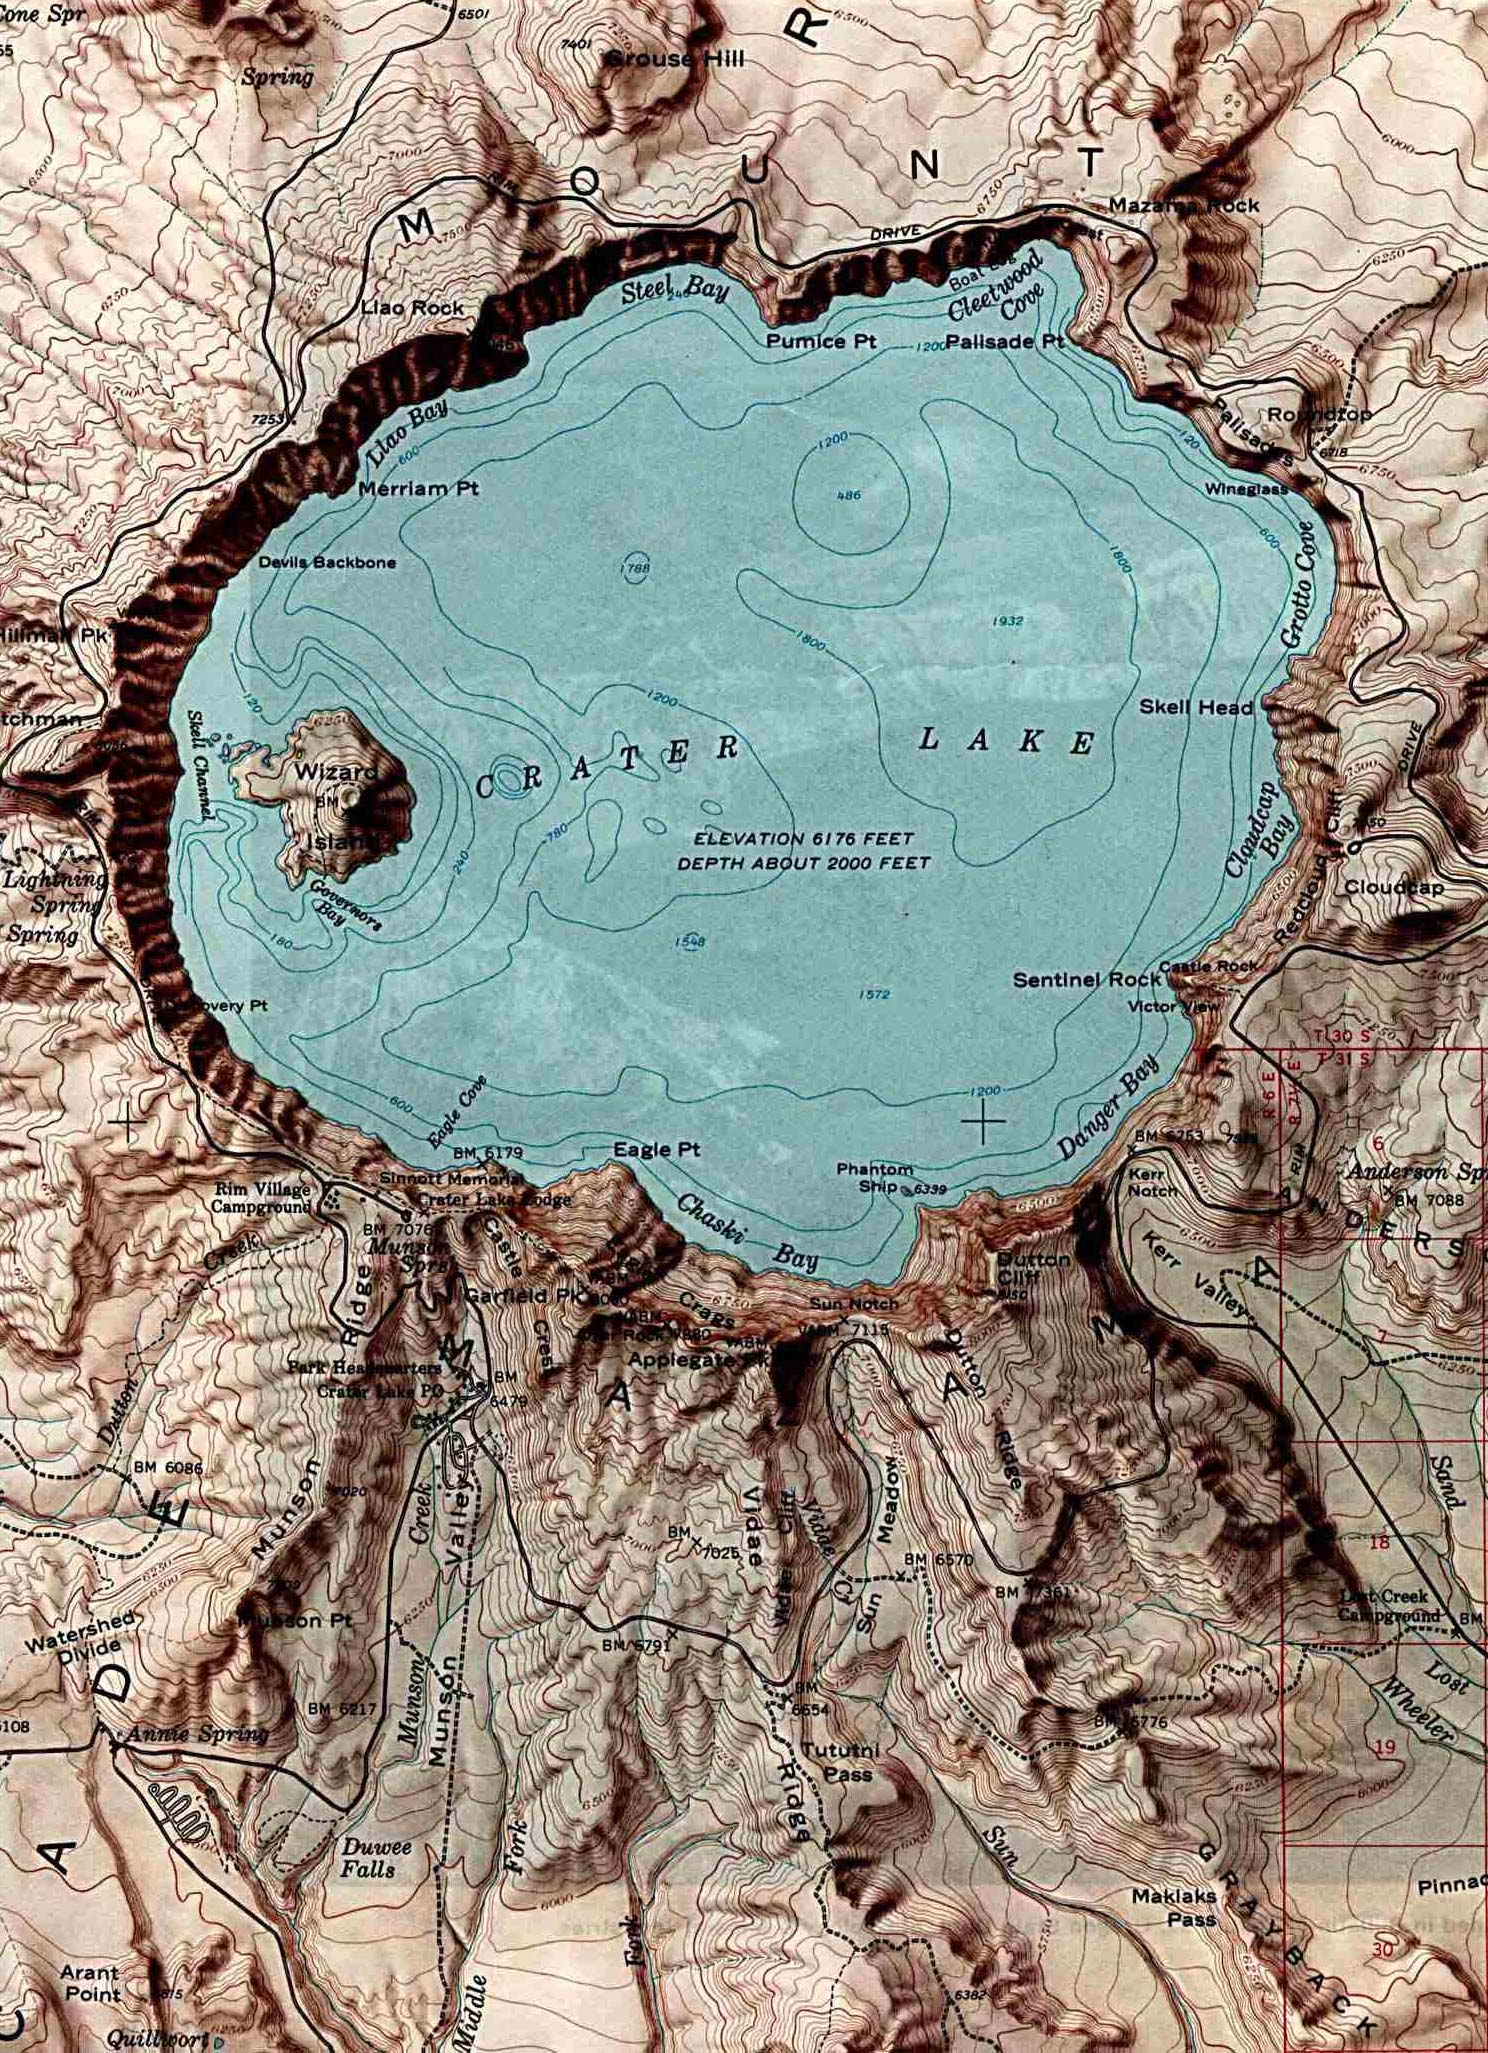 Maps of United States National Parks, Monuments and Historic Sites Crater Lake National Park [Oregon] (Shaded Relief Map) 1:62,500 U.S.G.S. 1984 (357K)